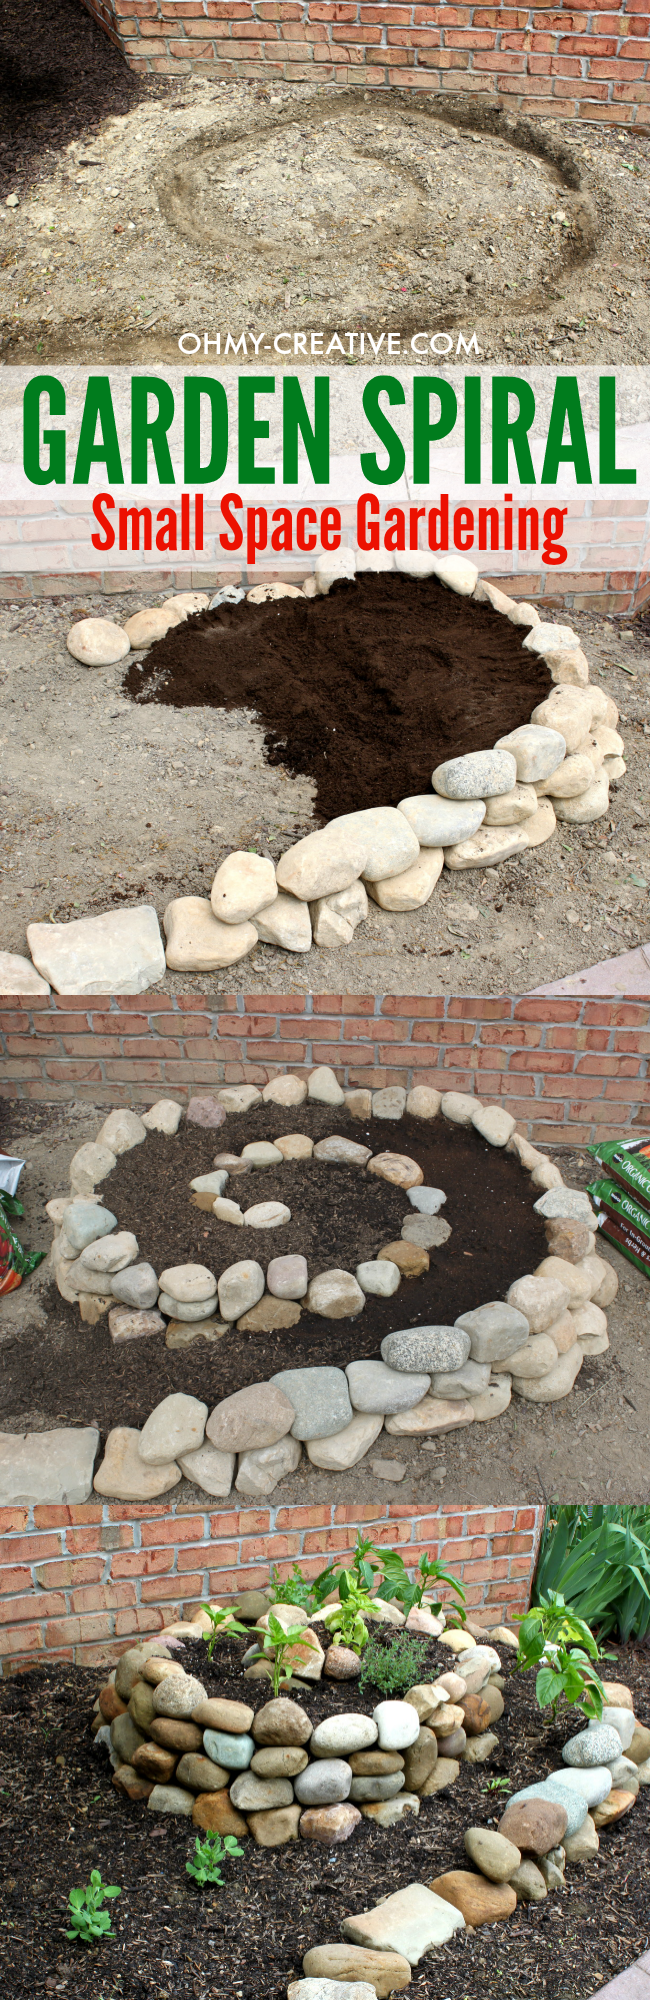 This Garden Spiral is a great way to create a vegetable garden when you only have a small space to work with. Plus it looks pretty in the yard - a great conversation piece!  |  OHMY-CREATIVE.COM